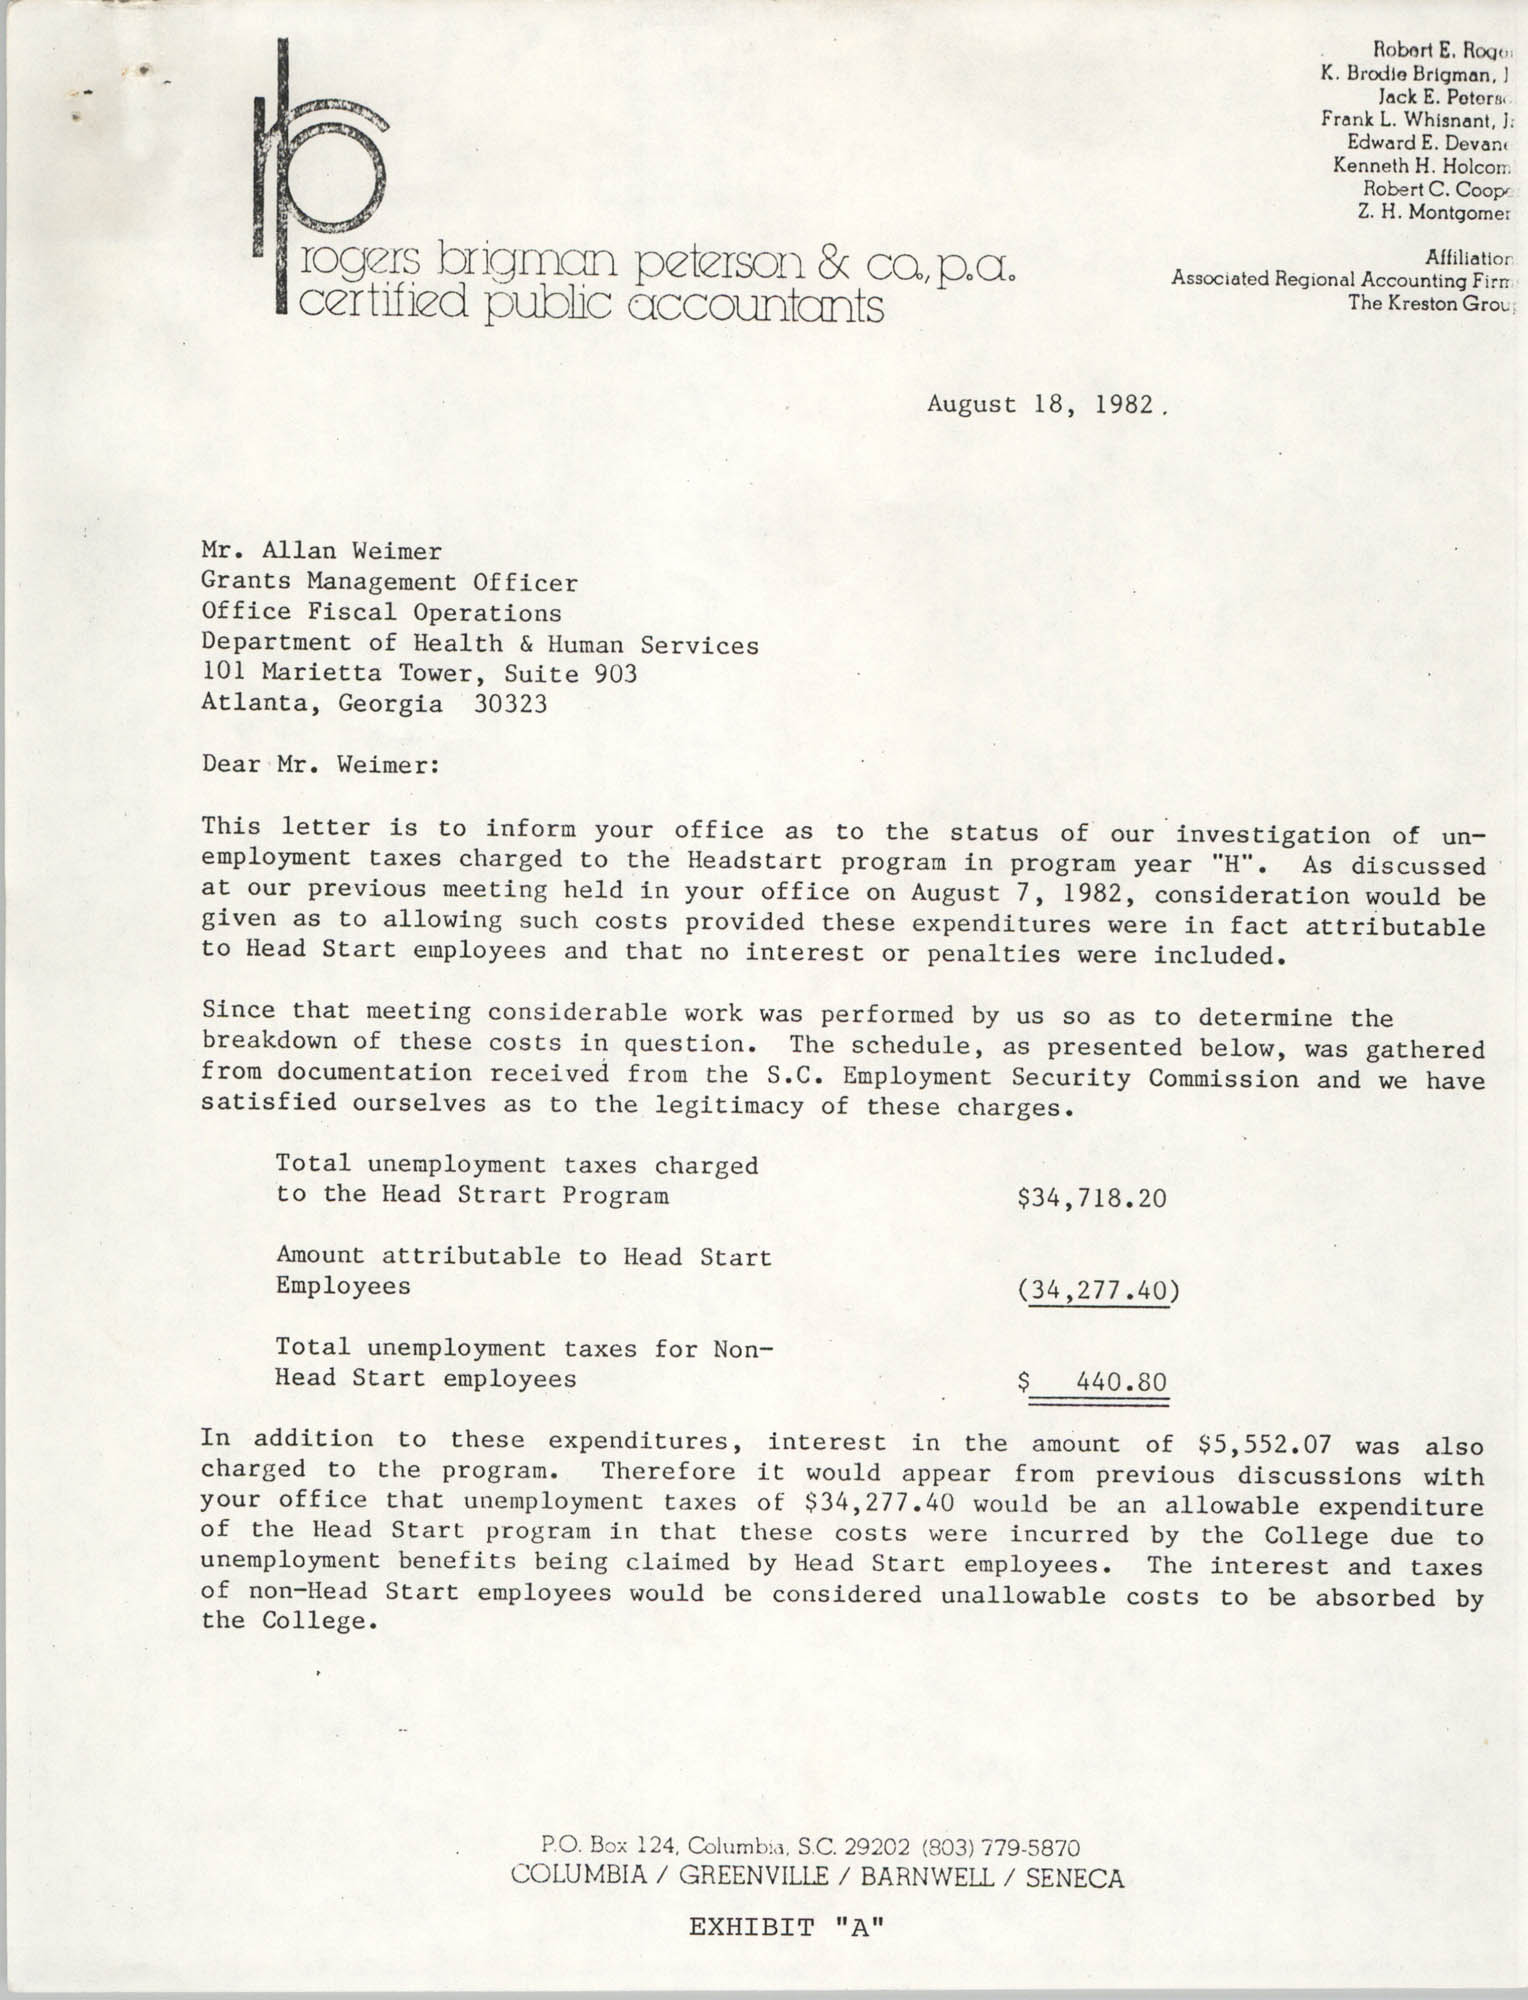 Letter from Mark J. Corey to Allan Weimer, August 18, 1982